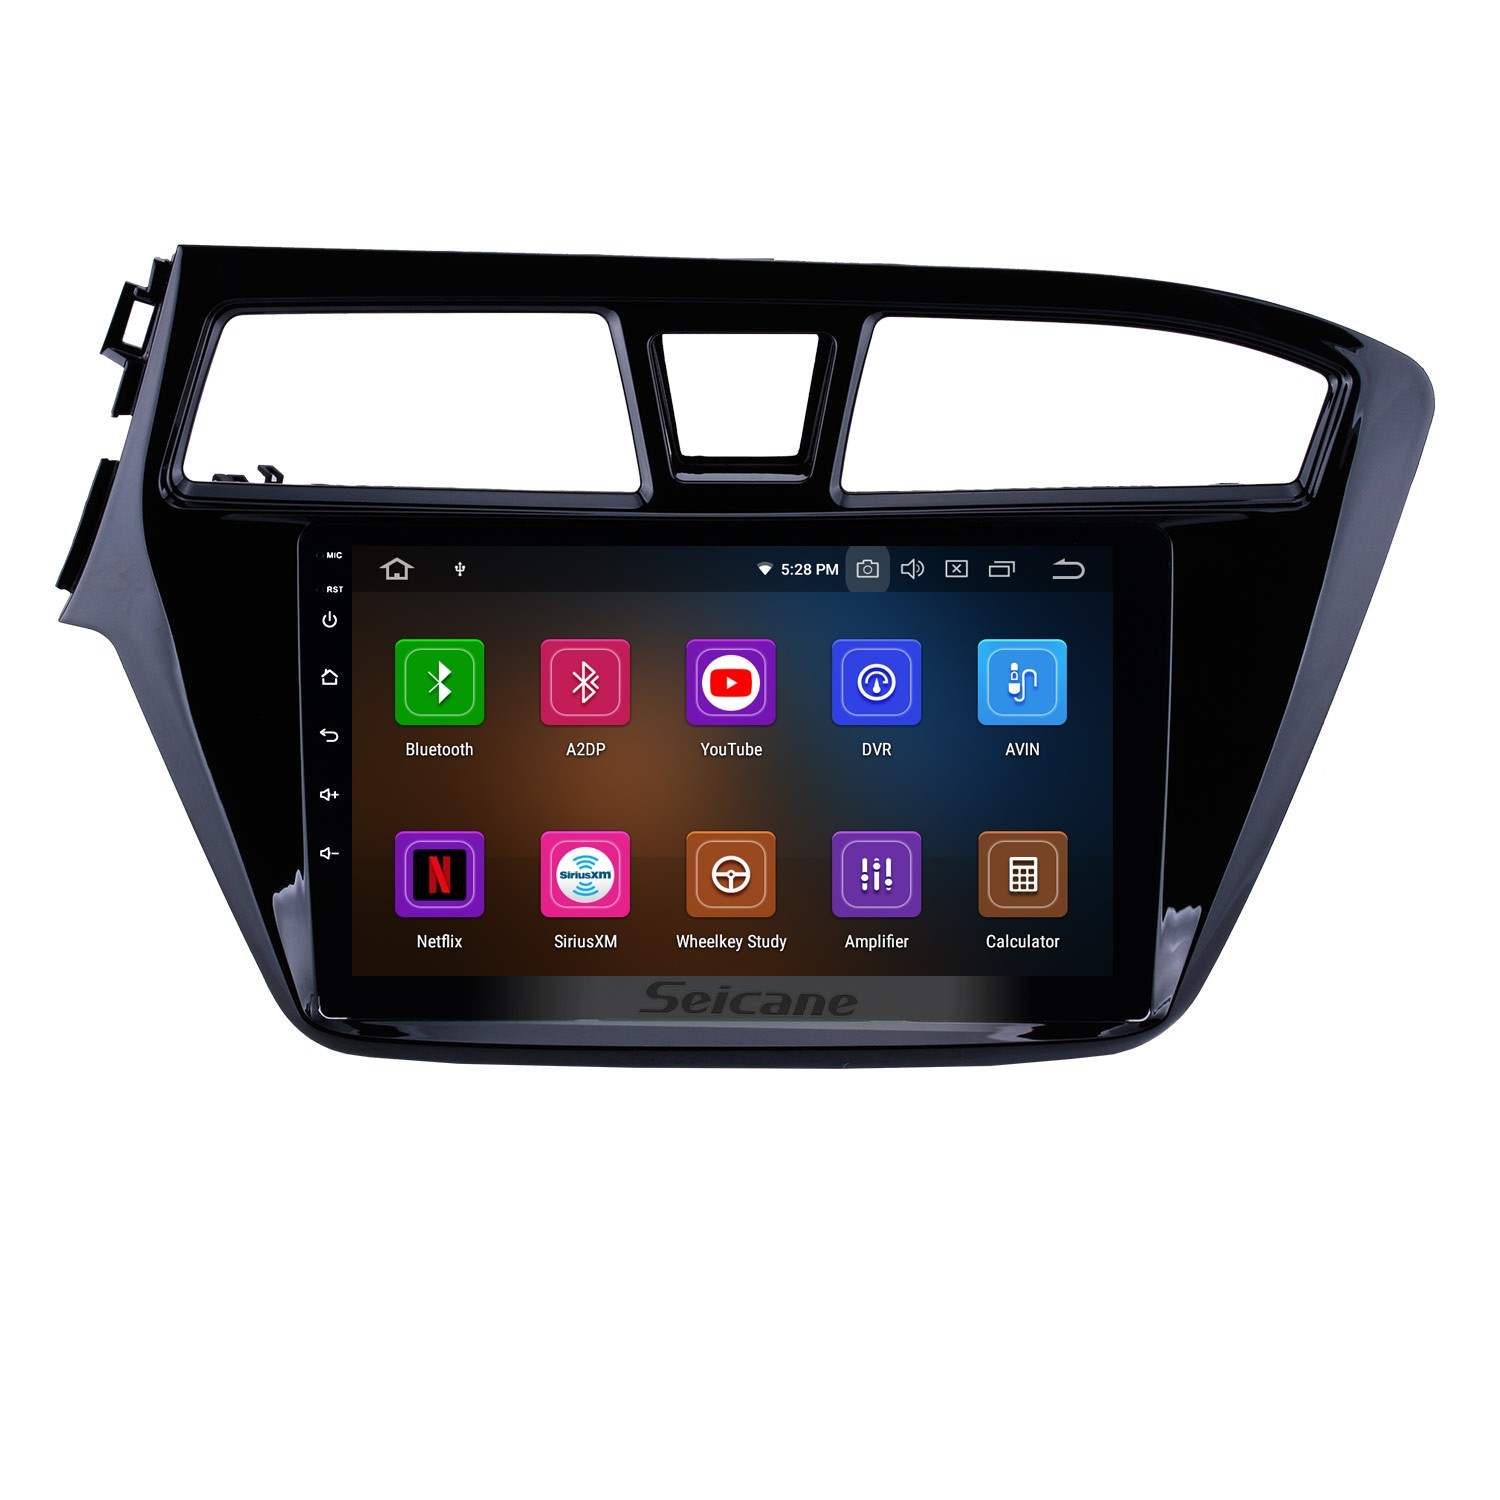 Aftermarket Android 9 0 navigation system Radio for 2014 2015